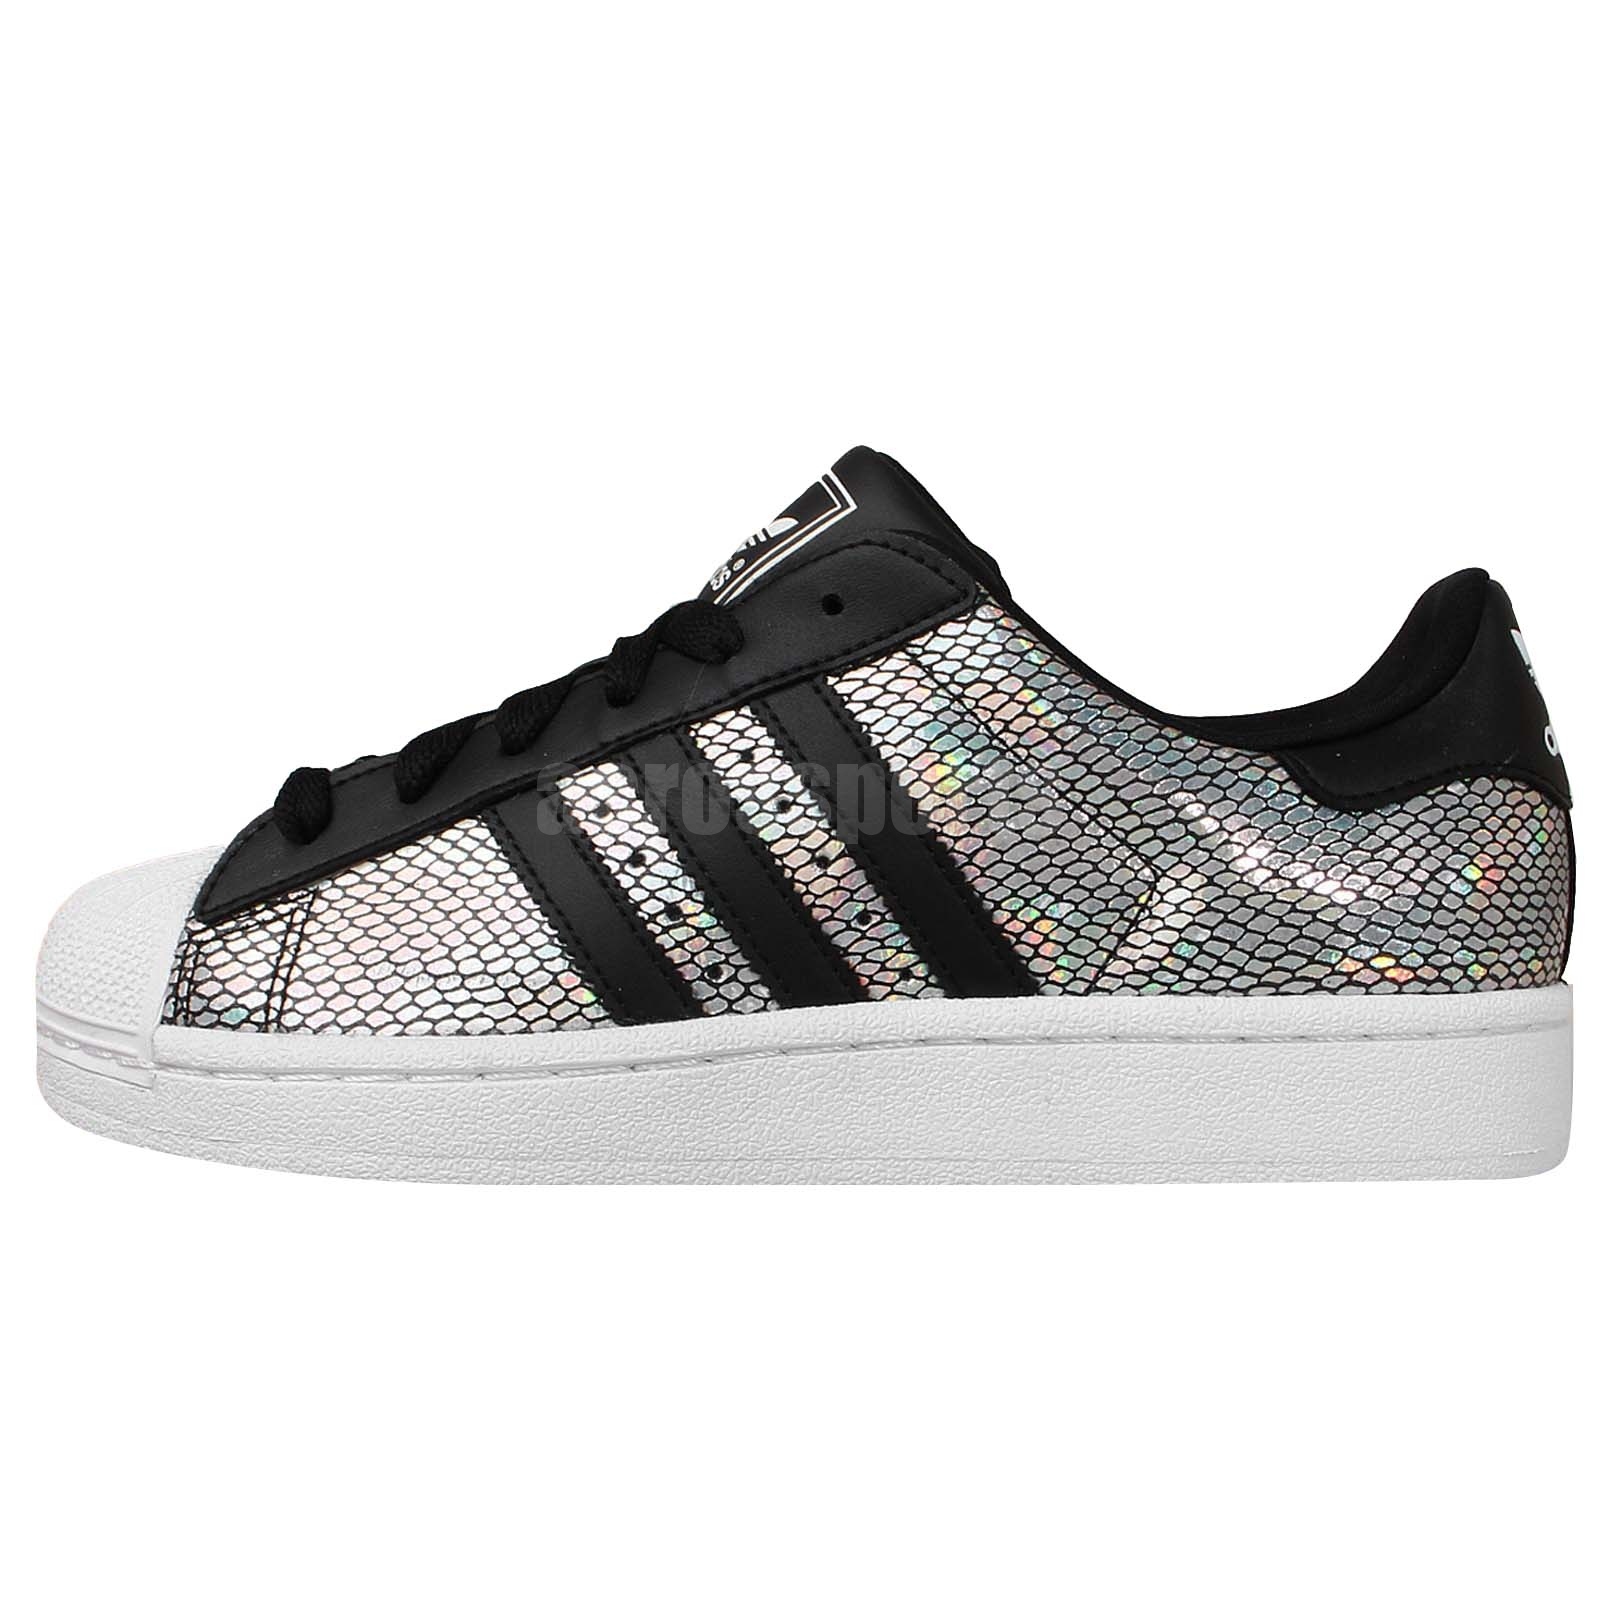 Cheap Adidas SUPERSTAR UP STRAP SNEAKER Black